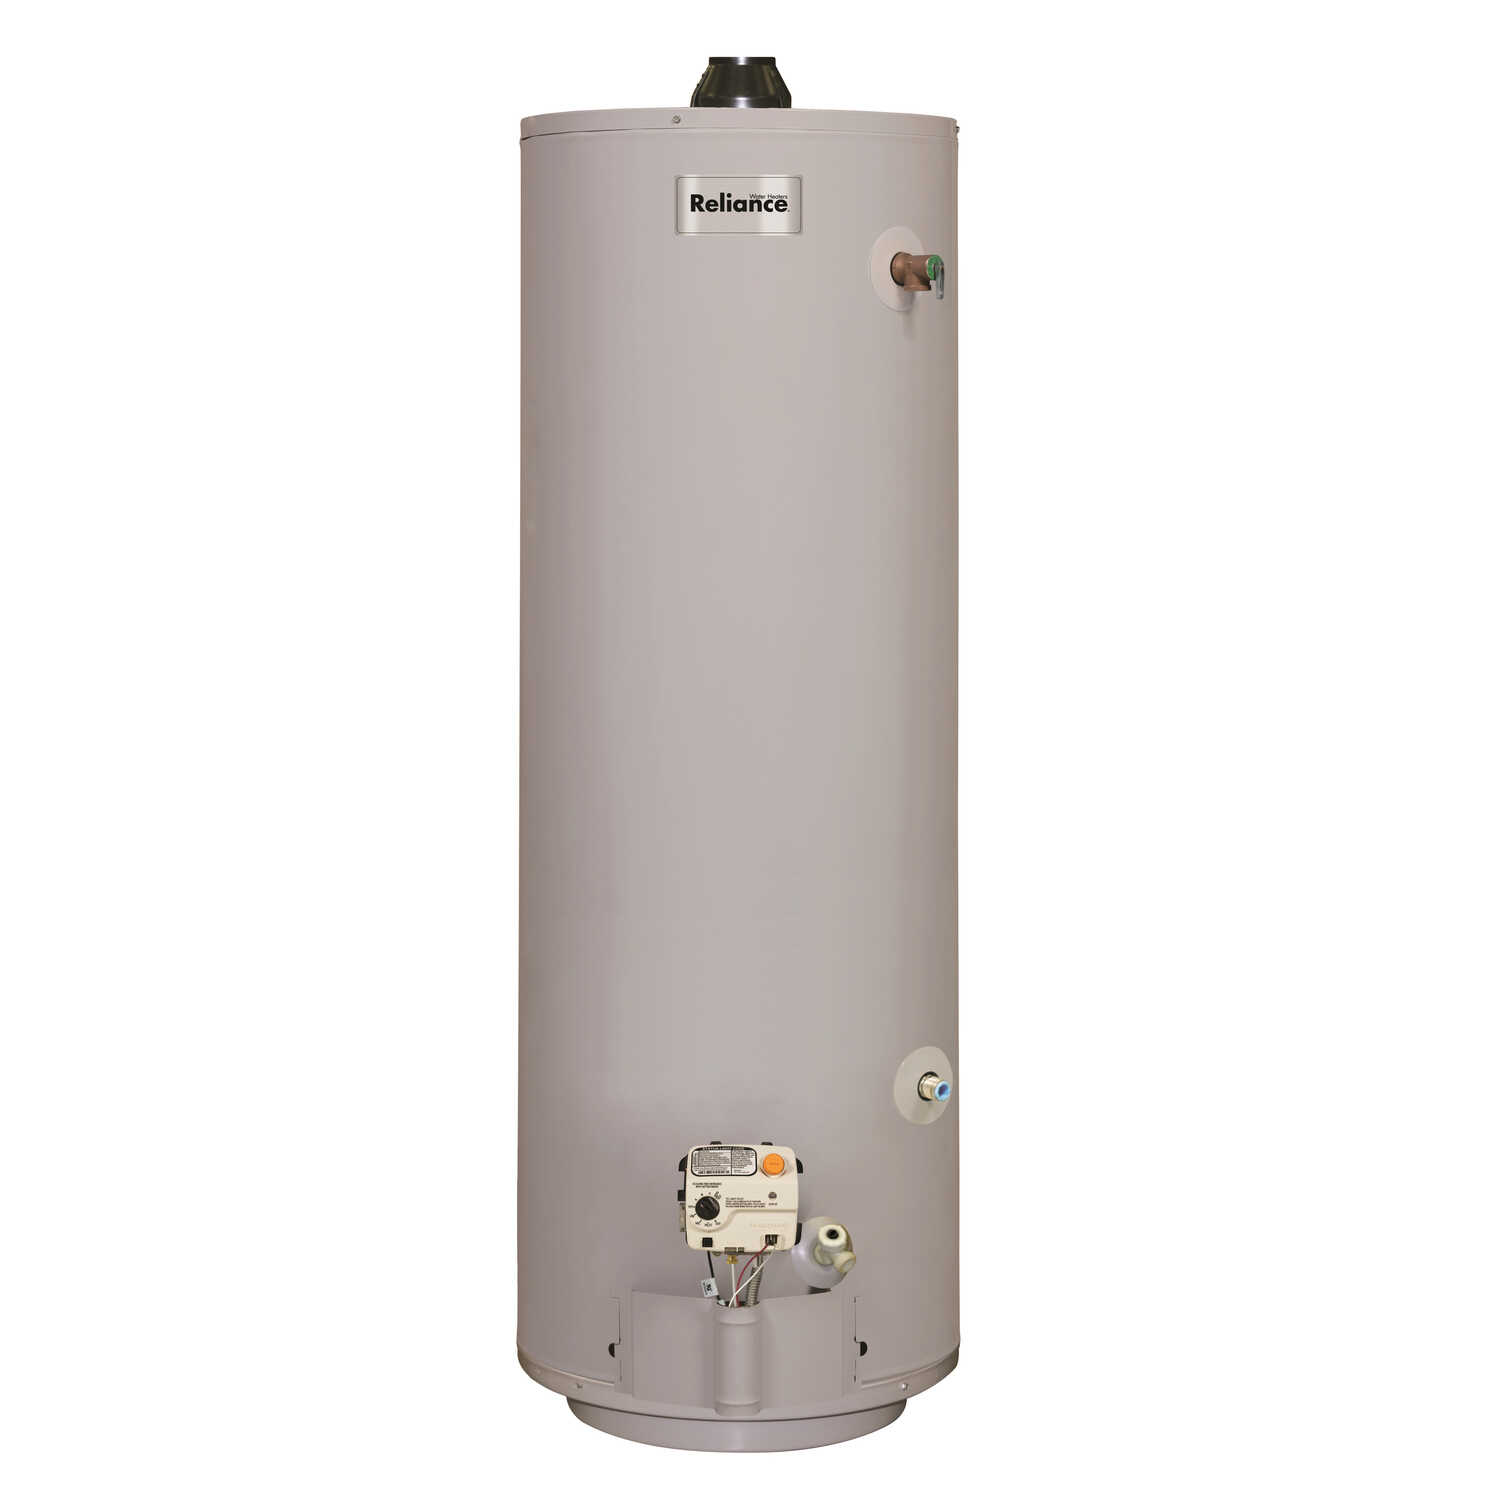 Reliance  30 gal. 30000 BTU Natural Gas/Propane  Mobile Home Water Heater